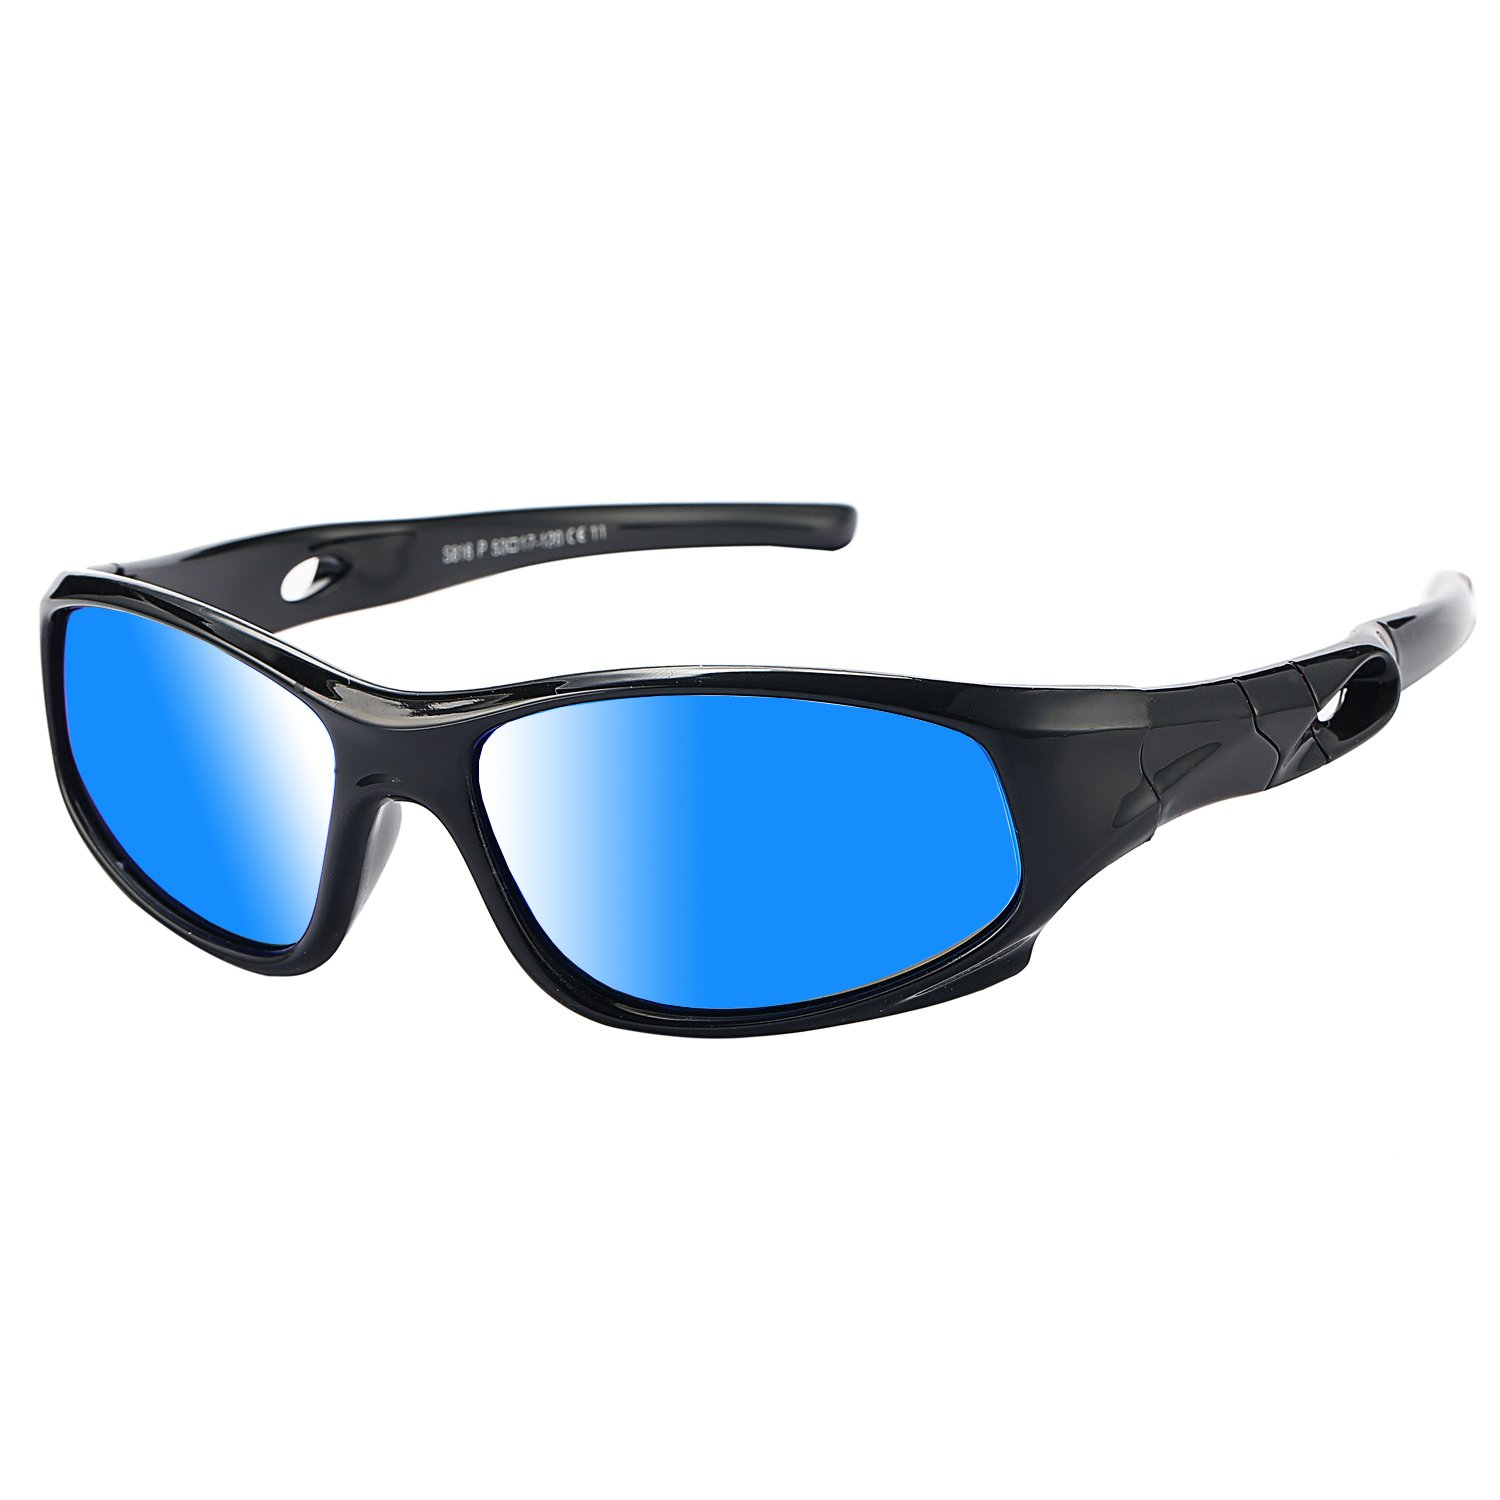 Pro Acme TR90 Unbreakable Polarized Sports Sunglasses for Kids Boys and Girls (Black/Blue Mirror)